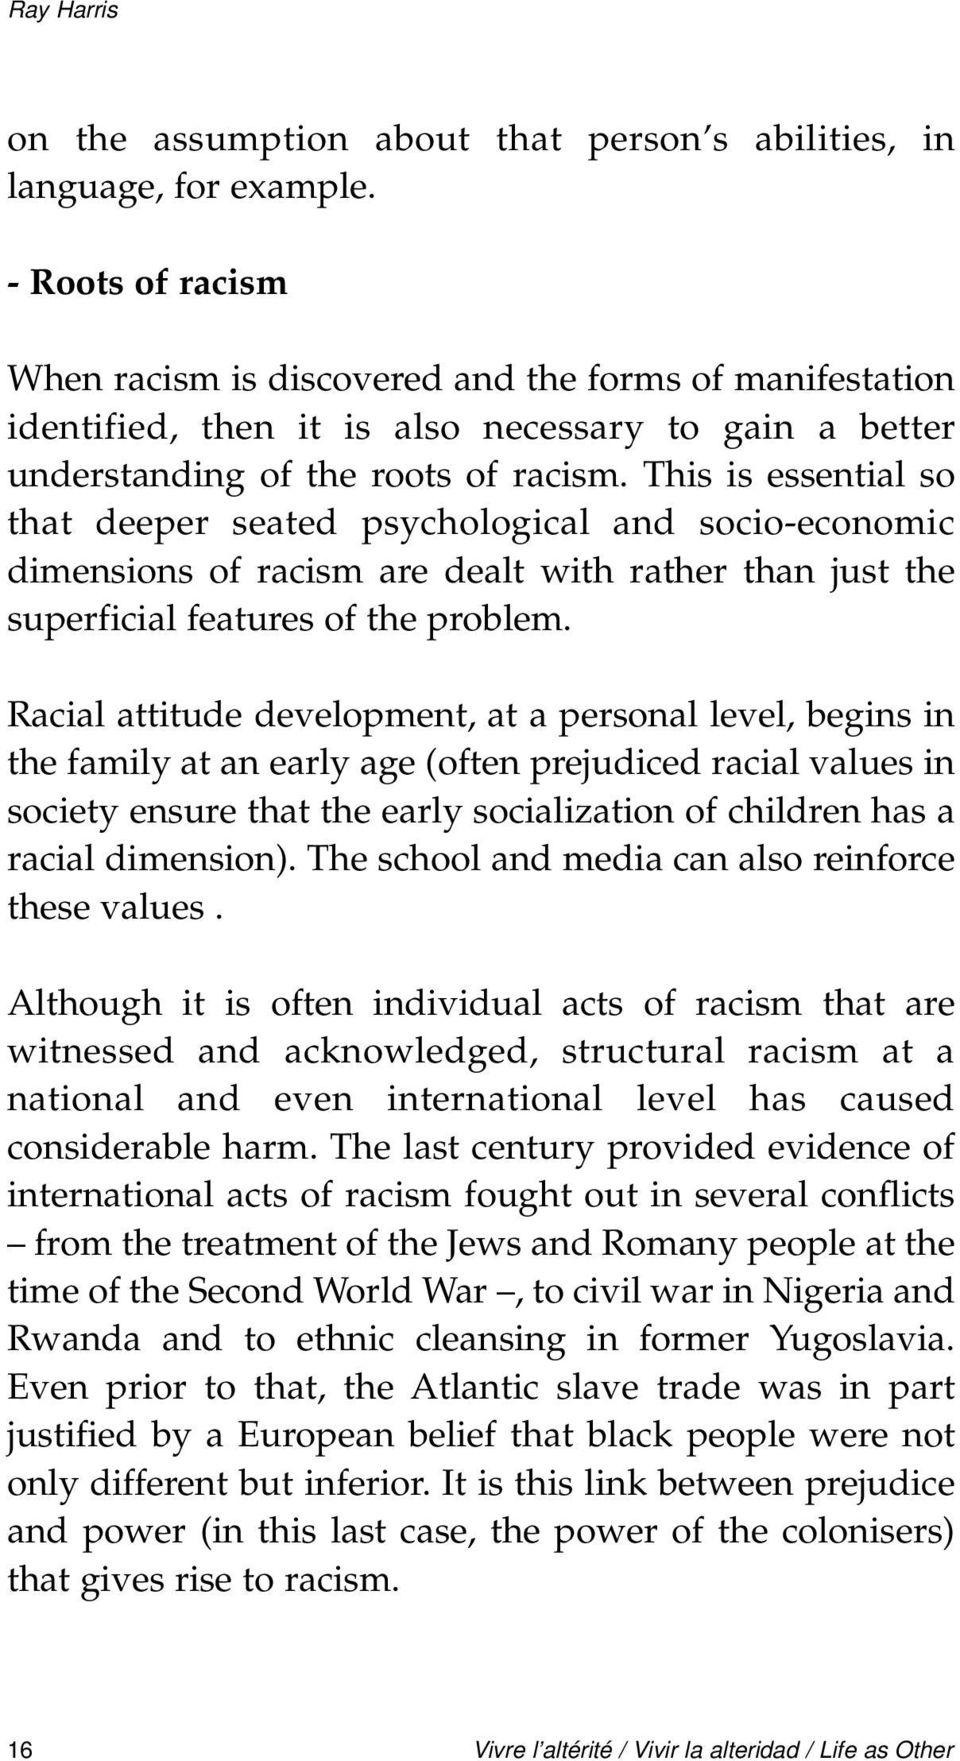 This is essential so that deeper seated psychological and socio-economic dimensions of racism are dealt with rather than just the superficial features of the problem.